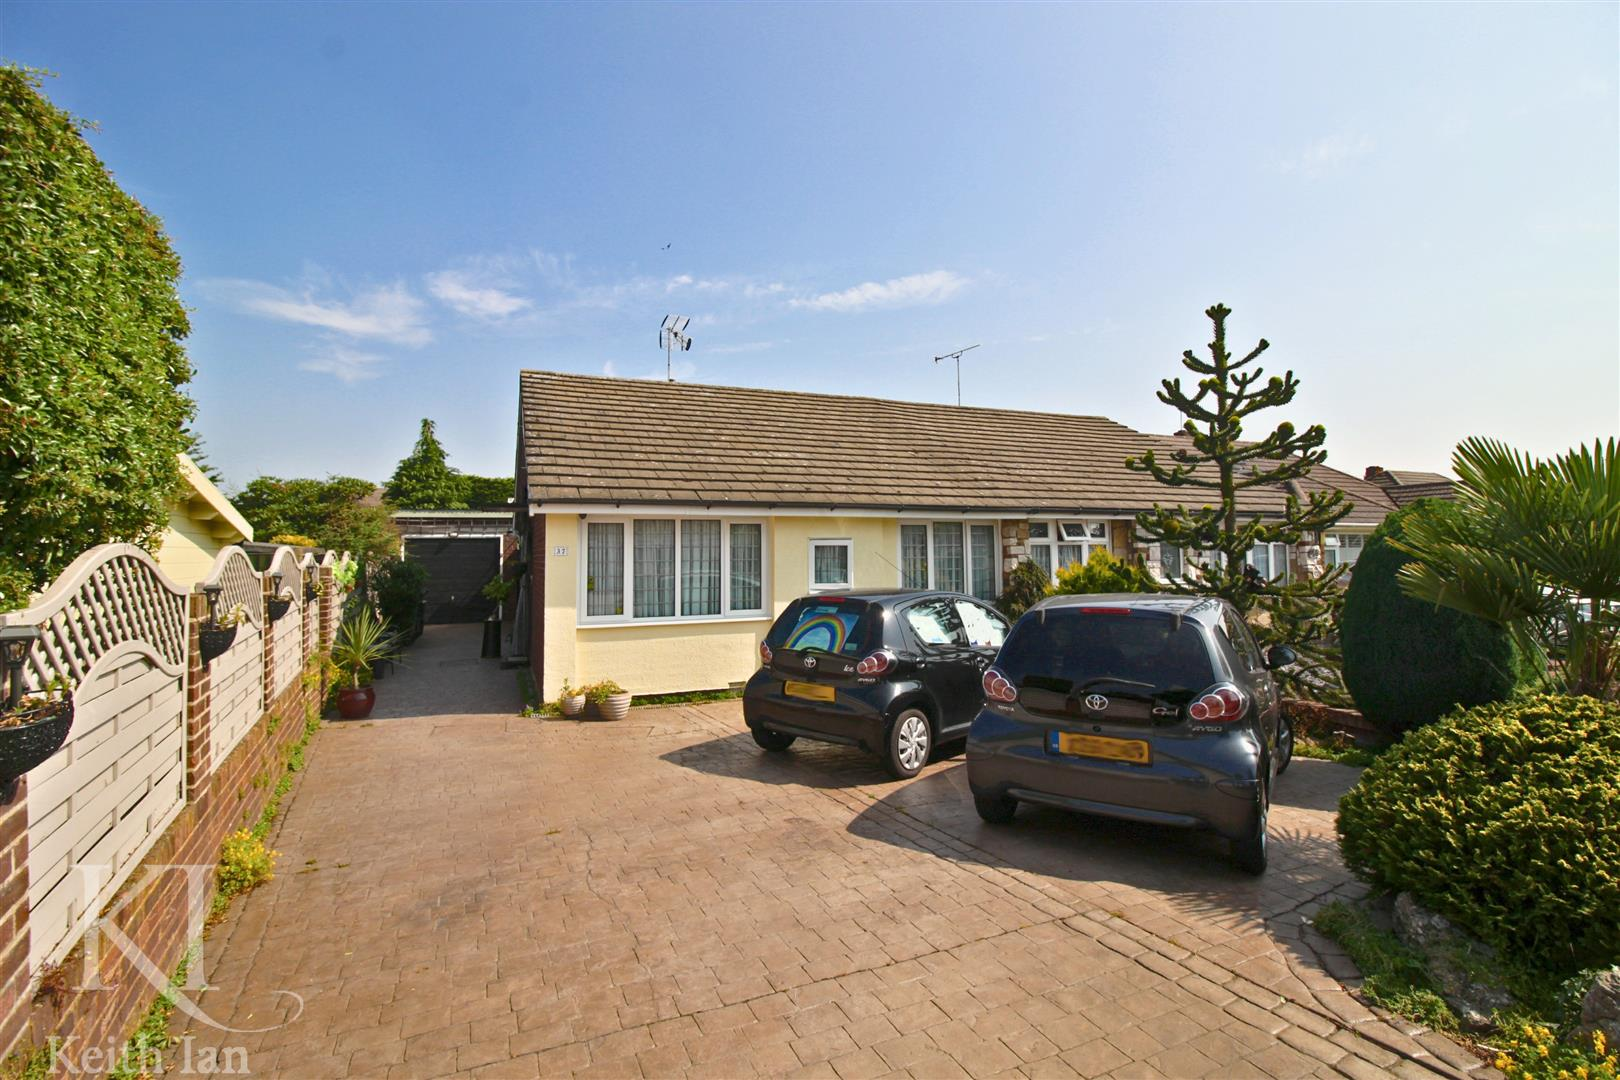 Winton Drive, Cheshunt - 2 Double Bedroom Bungalow With LARGE Garden